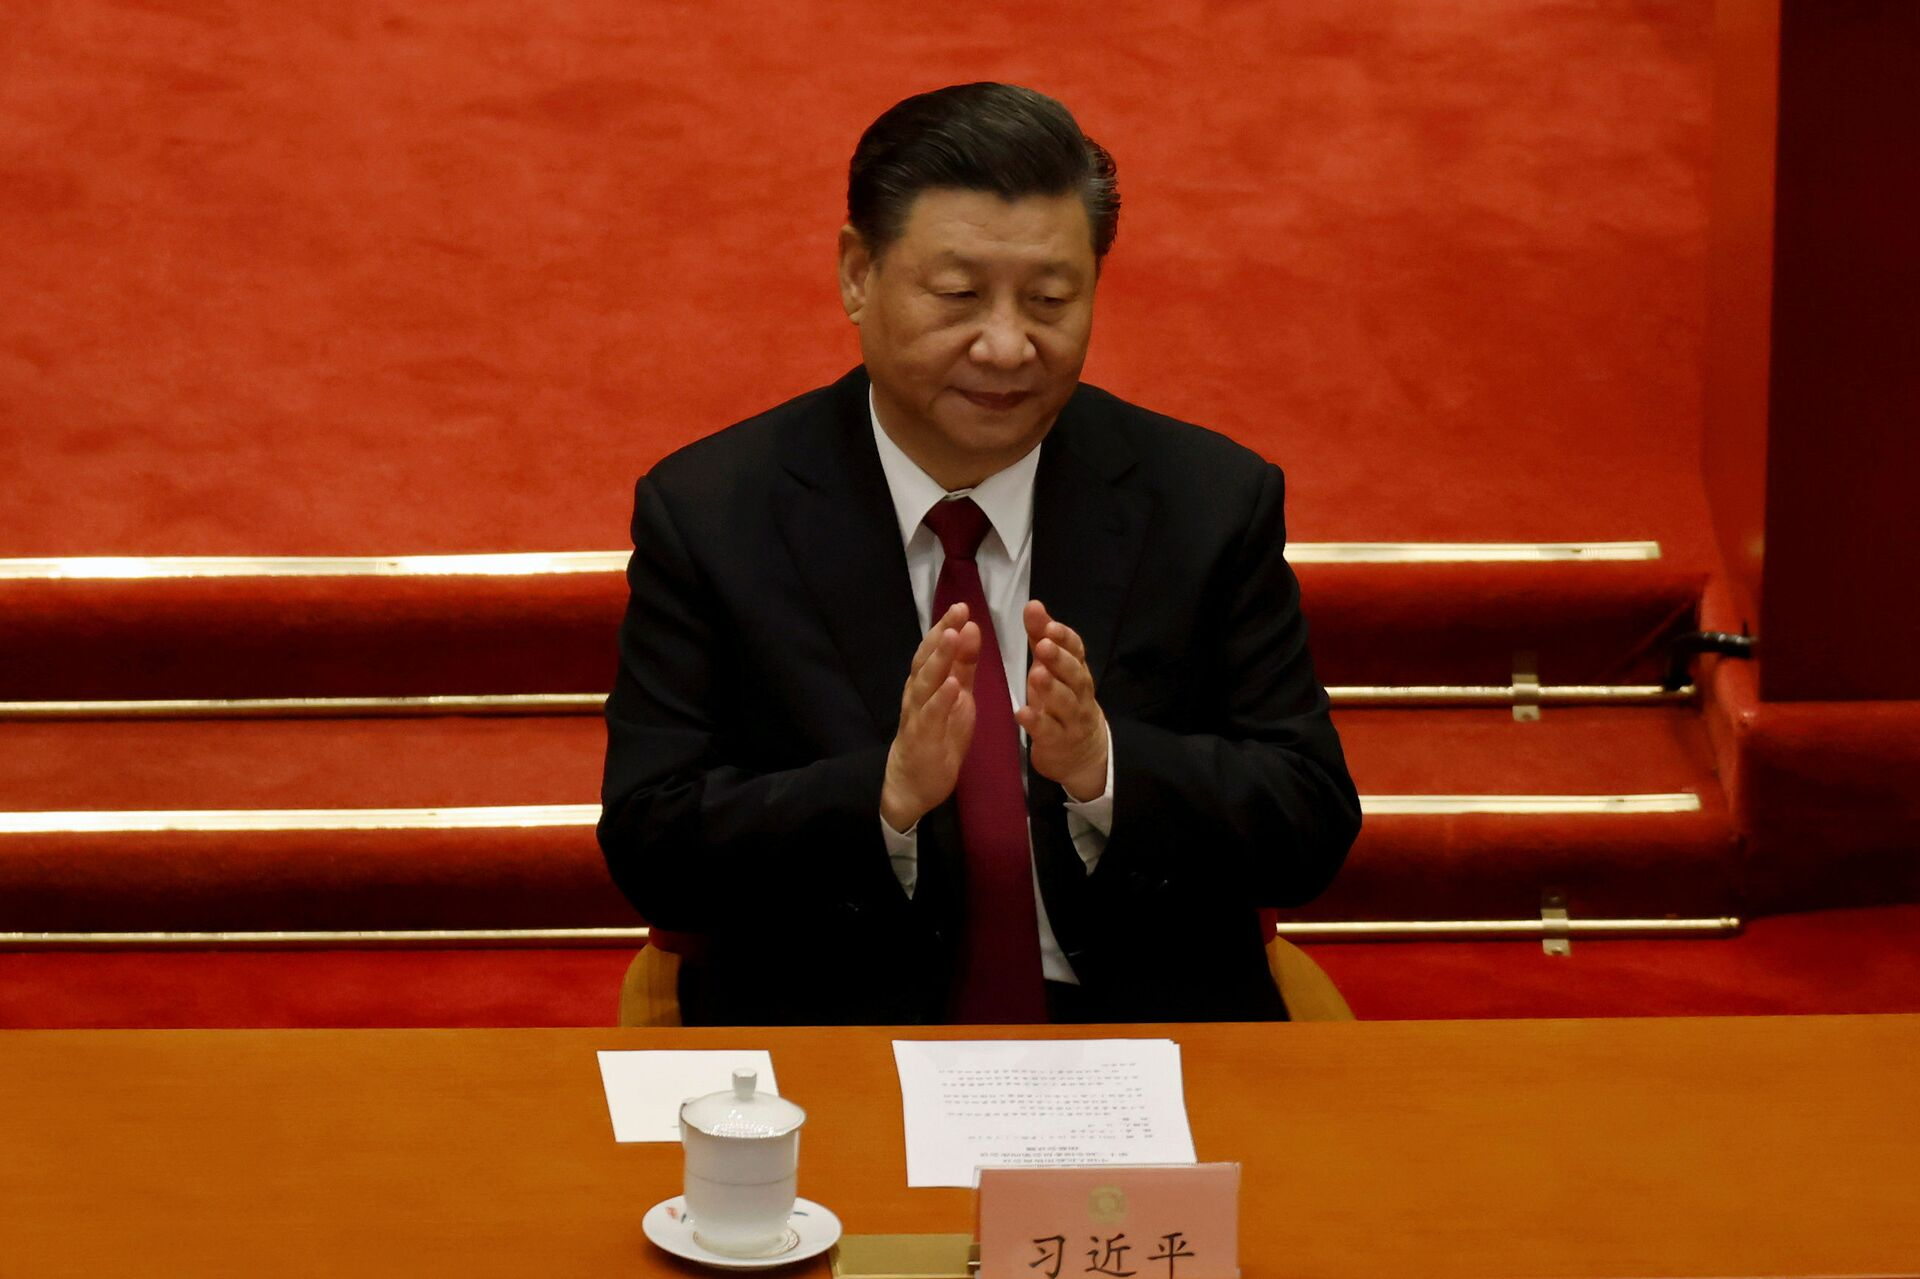 Chinese President Xi Jinping applauds at the closing session of the Chinese People's Political Consultative Conference (CPPCC) at the Great Hall of the People in Beijing, China March 10, 2021. - Sputnik International, 1920, 07.09.2021